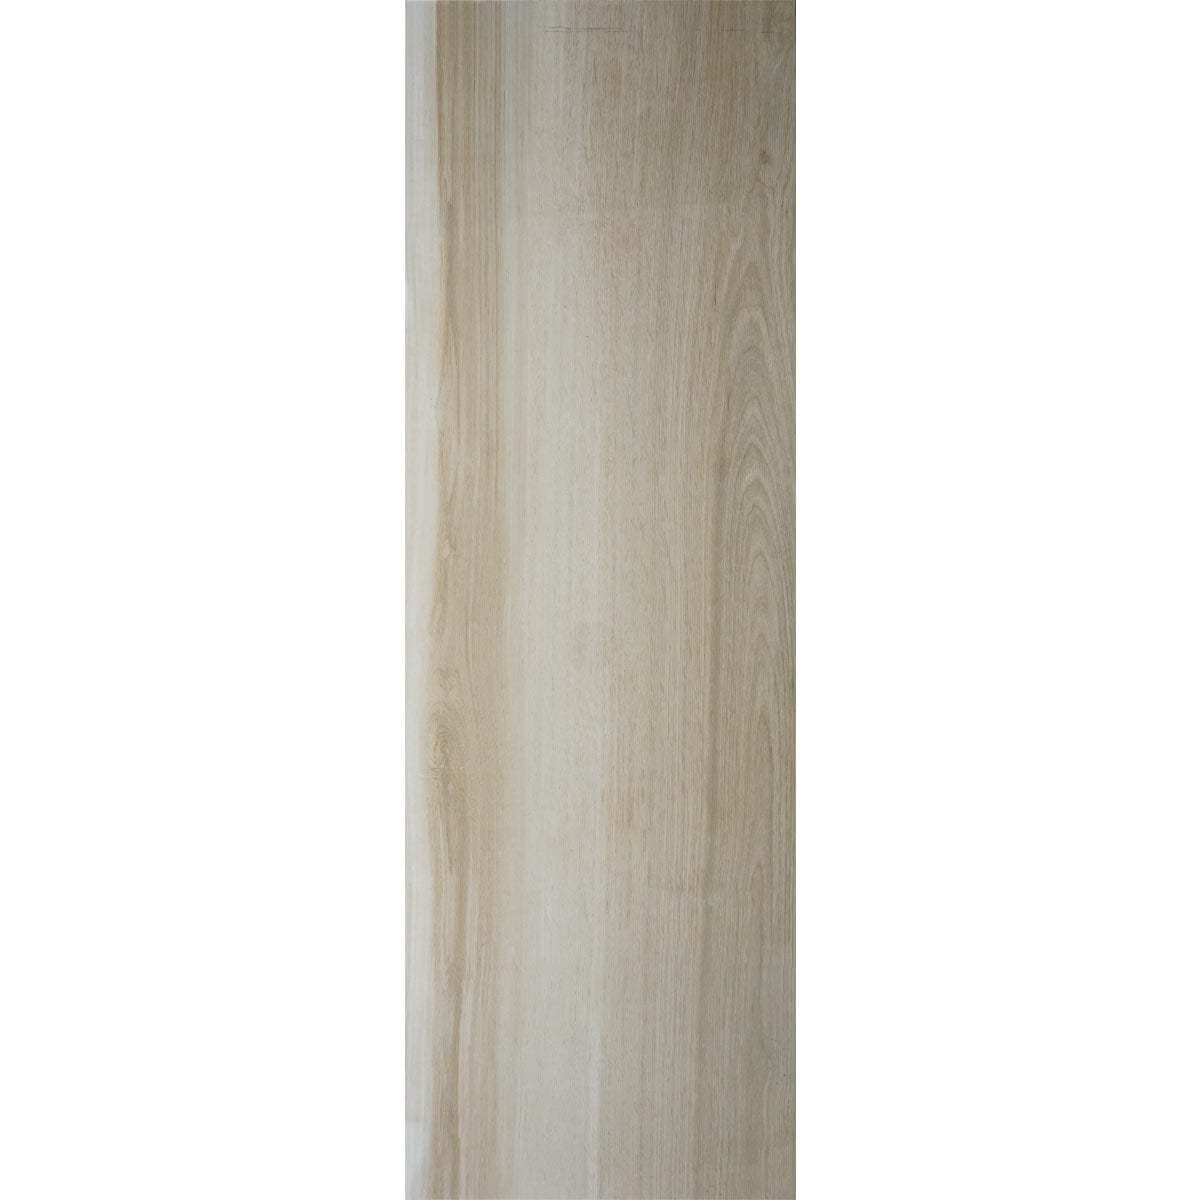 WOOD POLISHED TIMBER T10541 P1